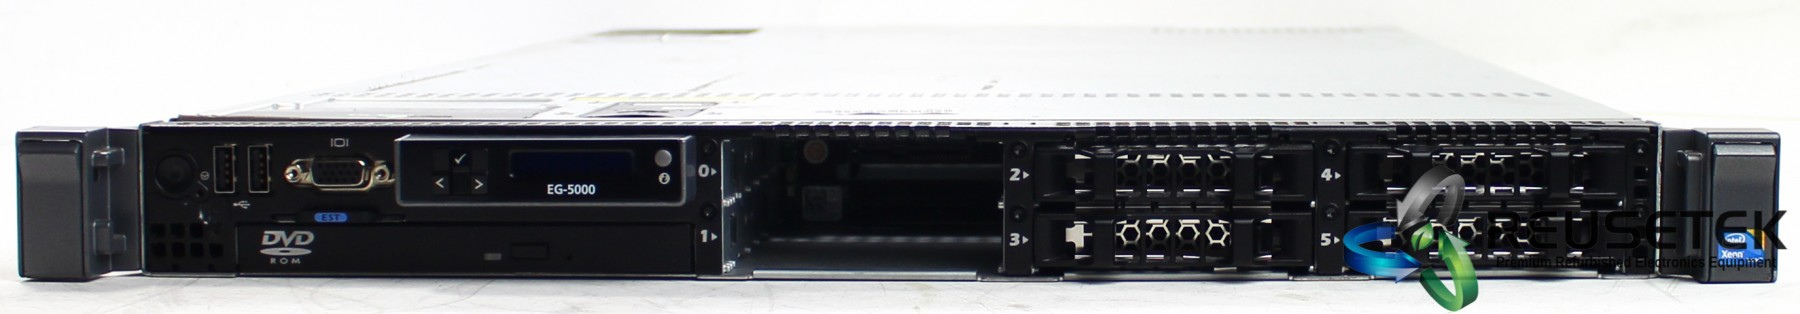 50002979-Dell PowerEdge R610 EG-5000 Server With Intel  E5540 Xeon Quad-Core Processor-image